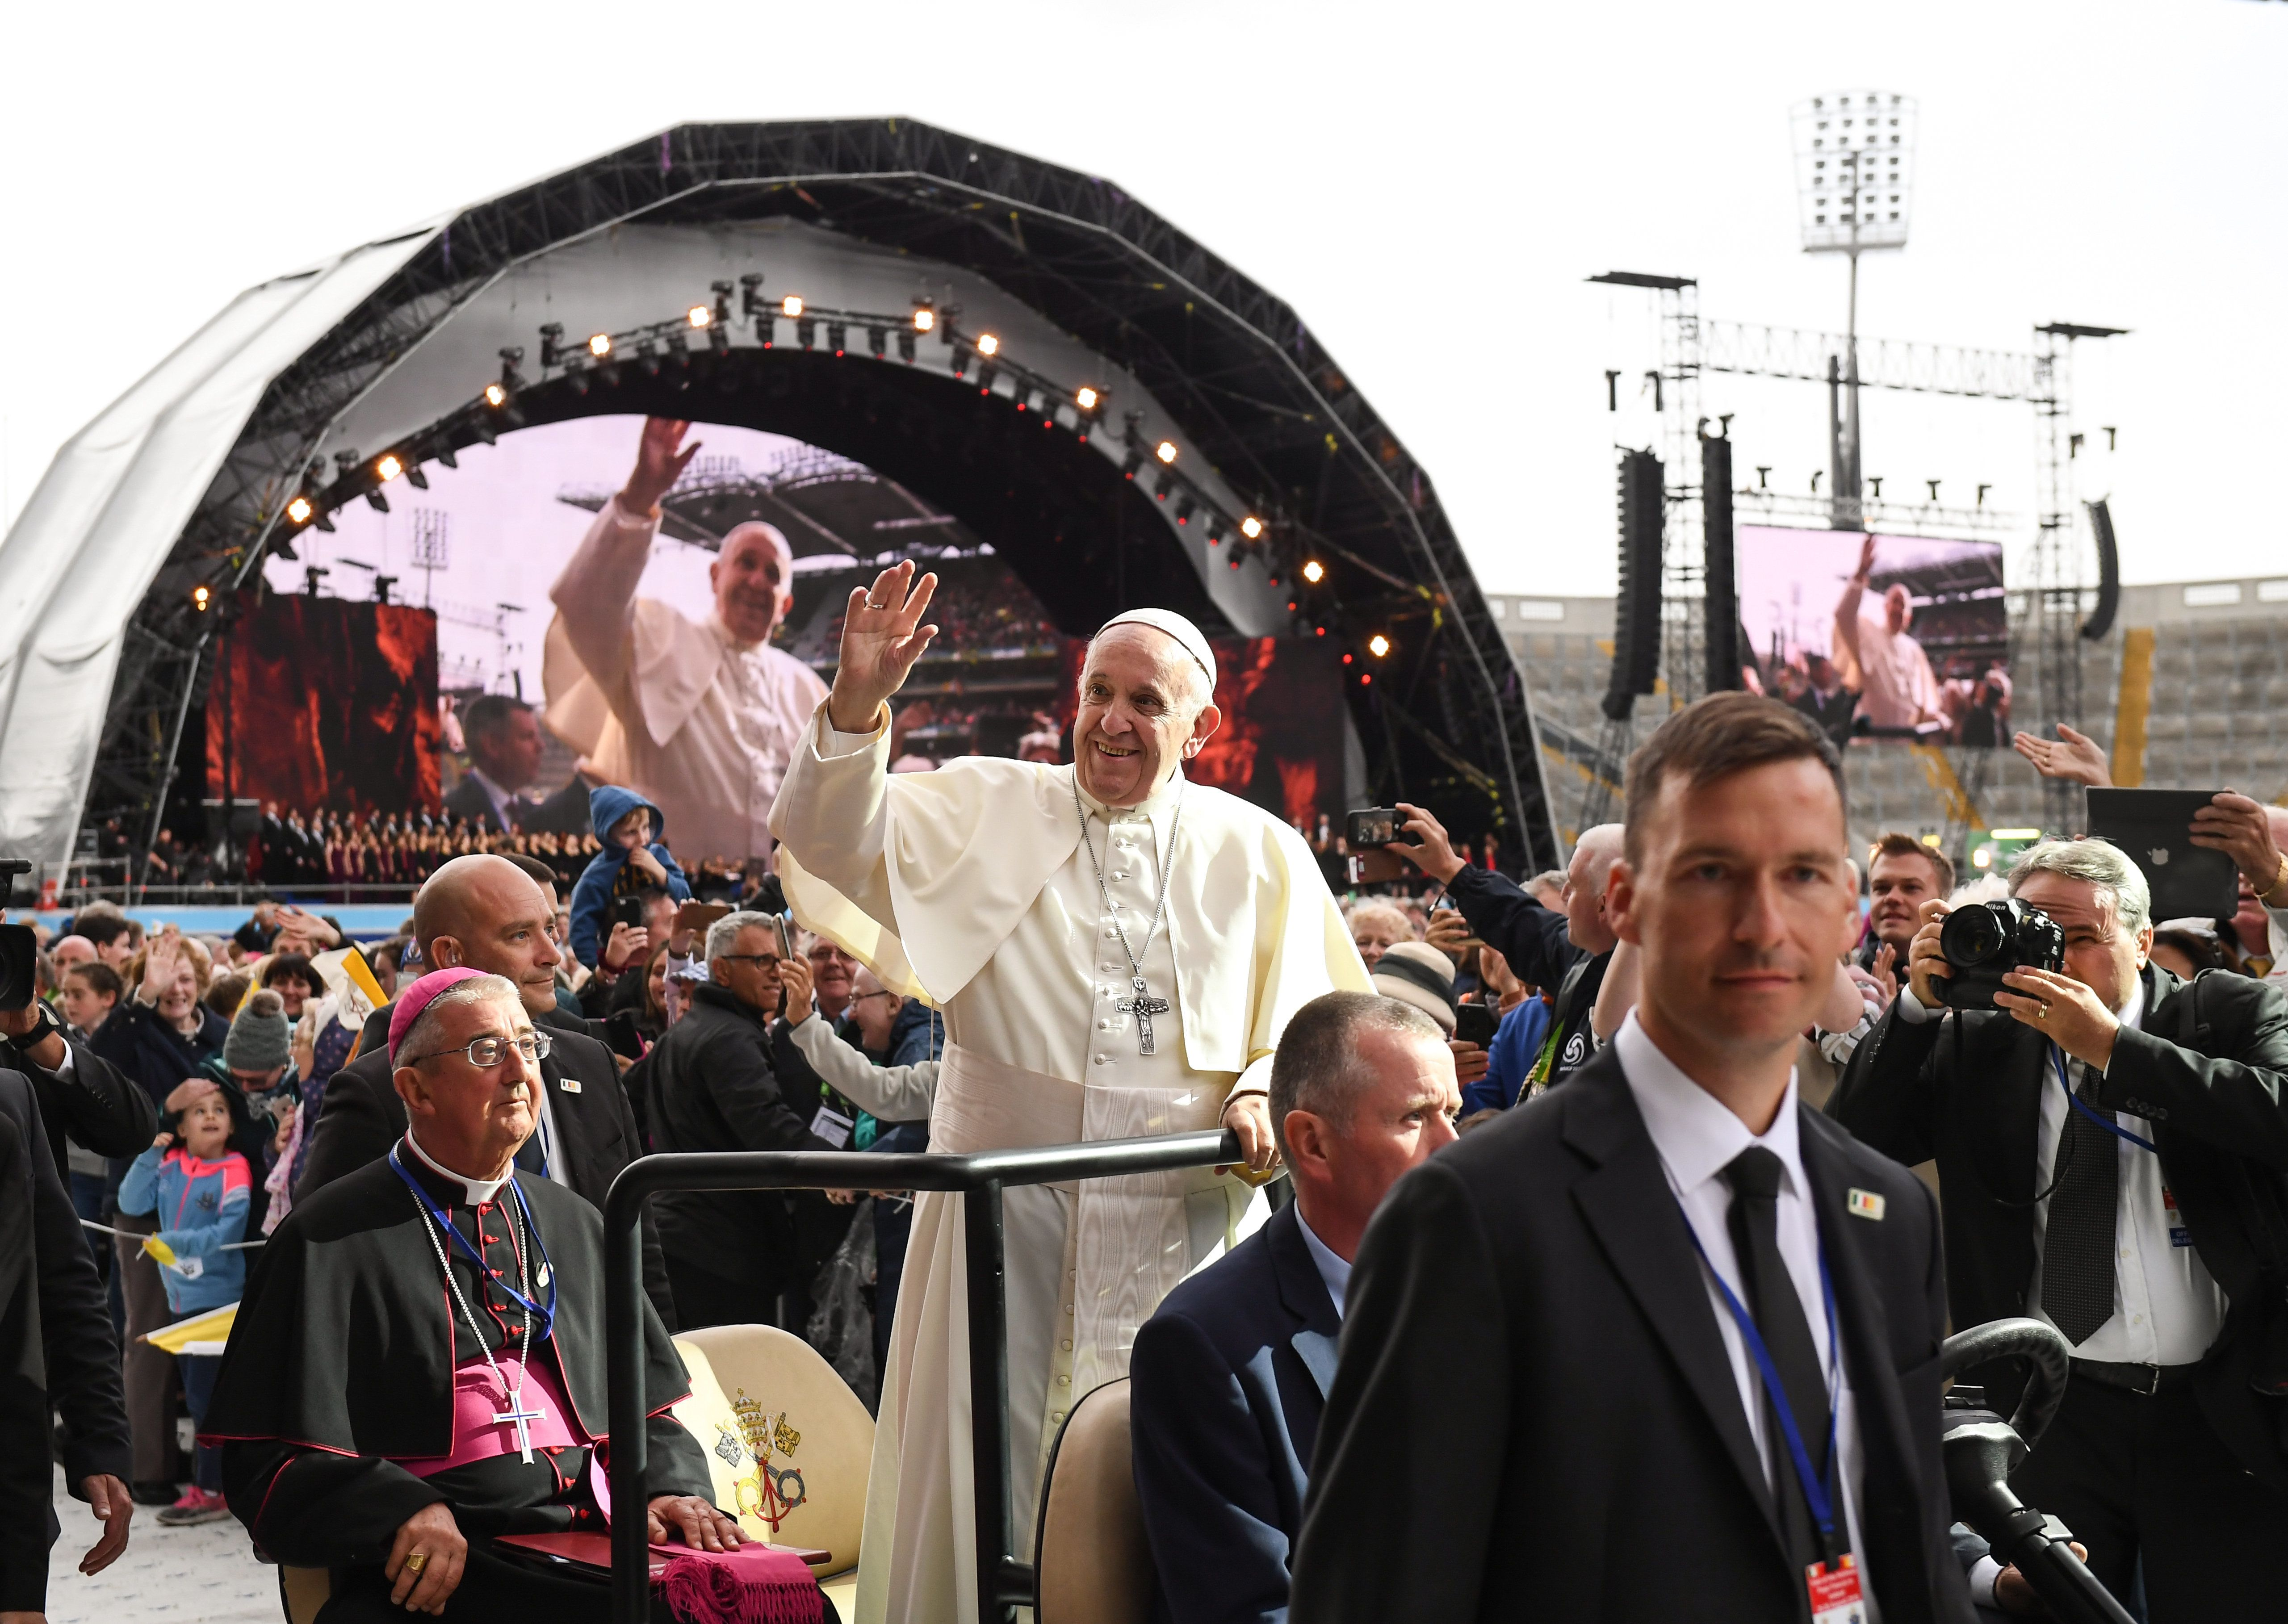 Pope Francis during The Festival of Families at Croke Park in Dublin.